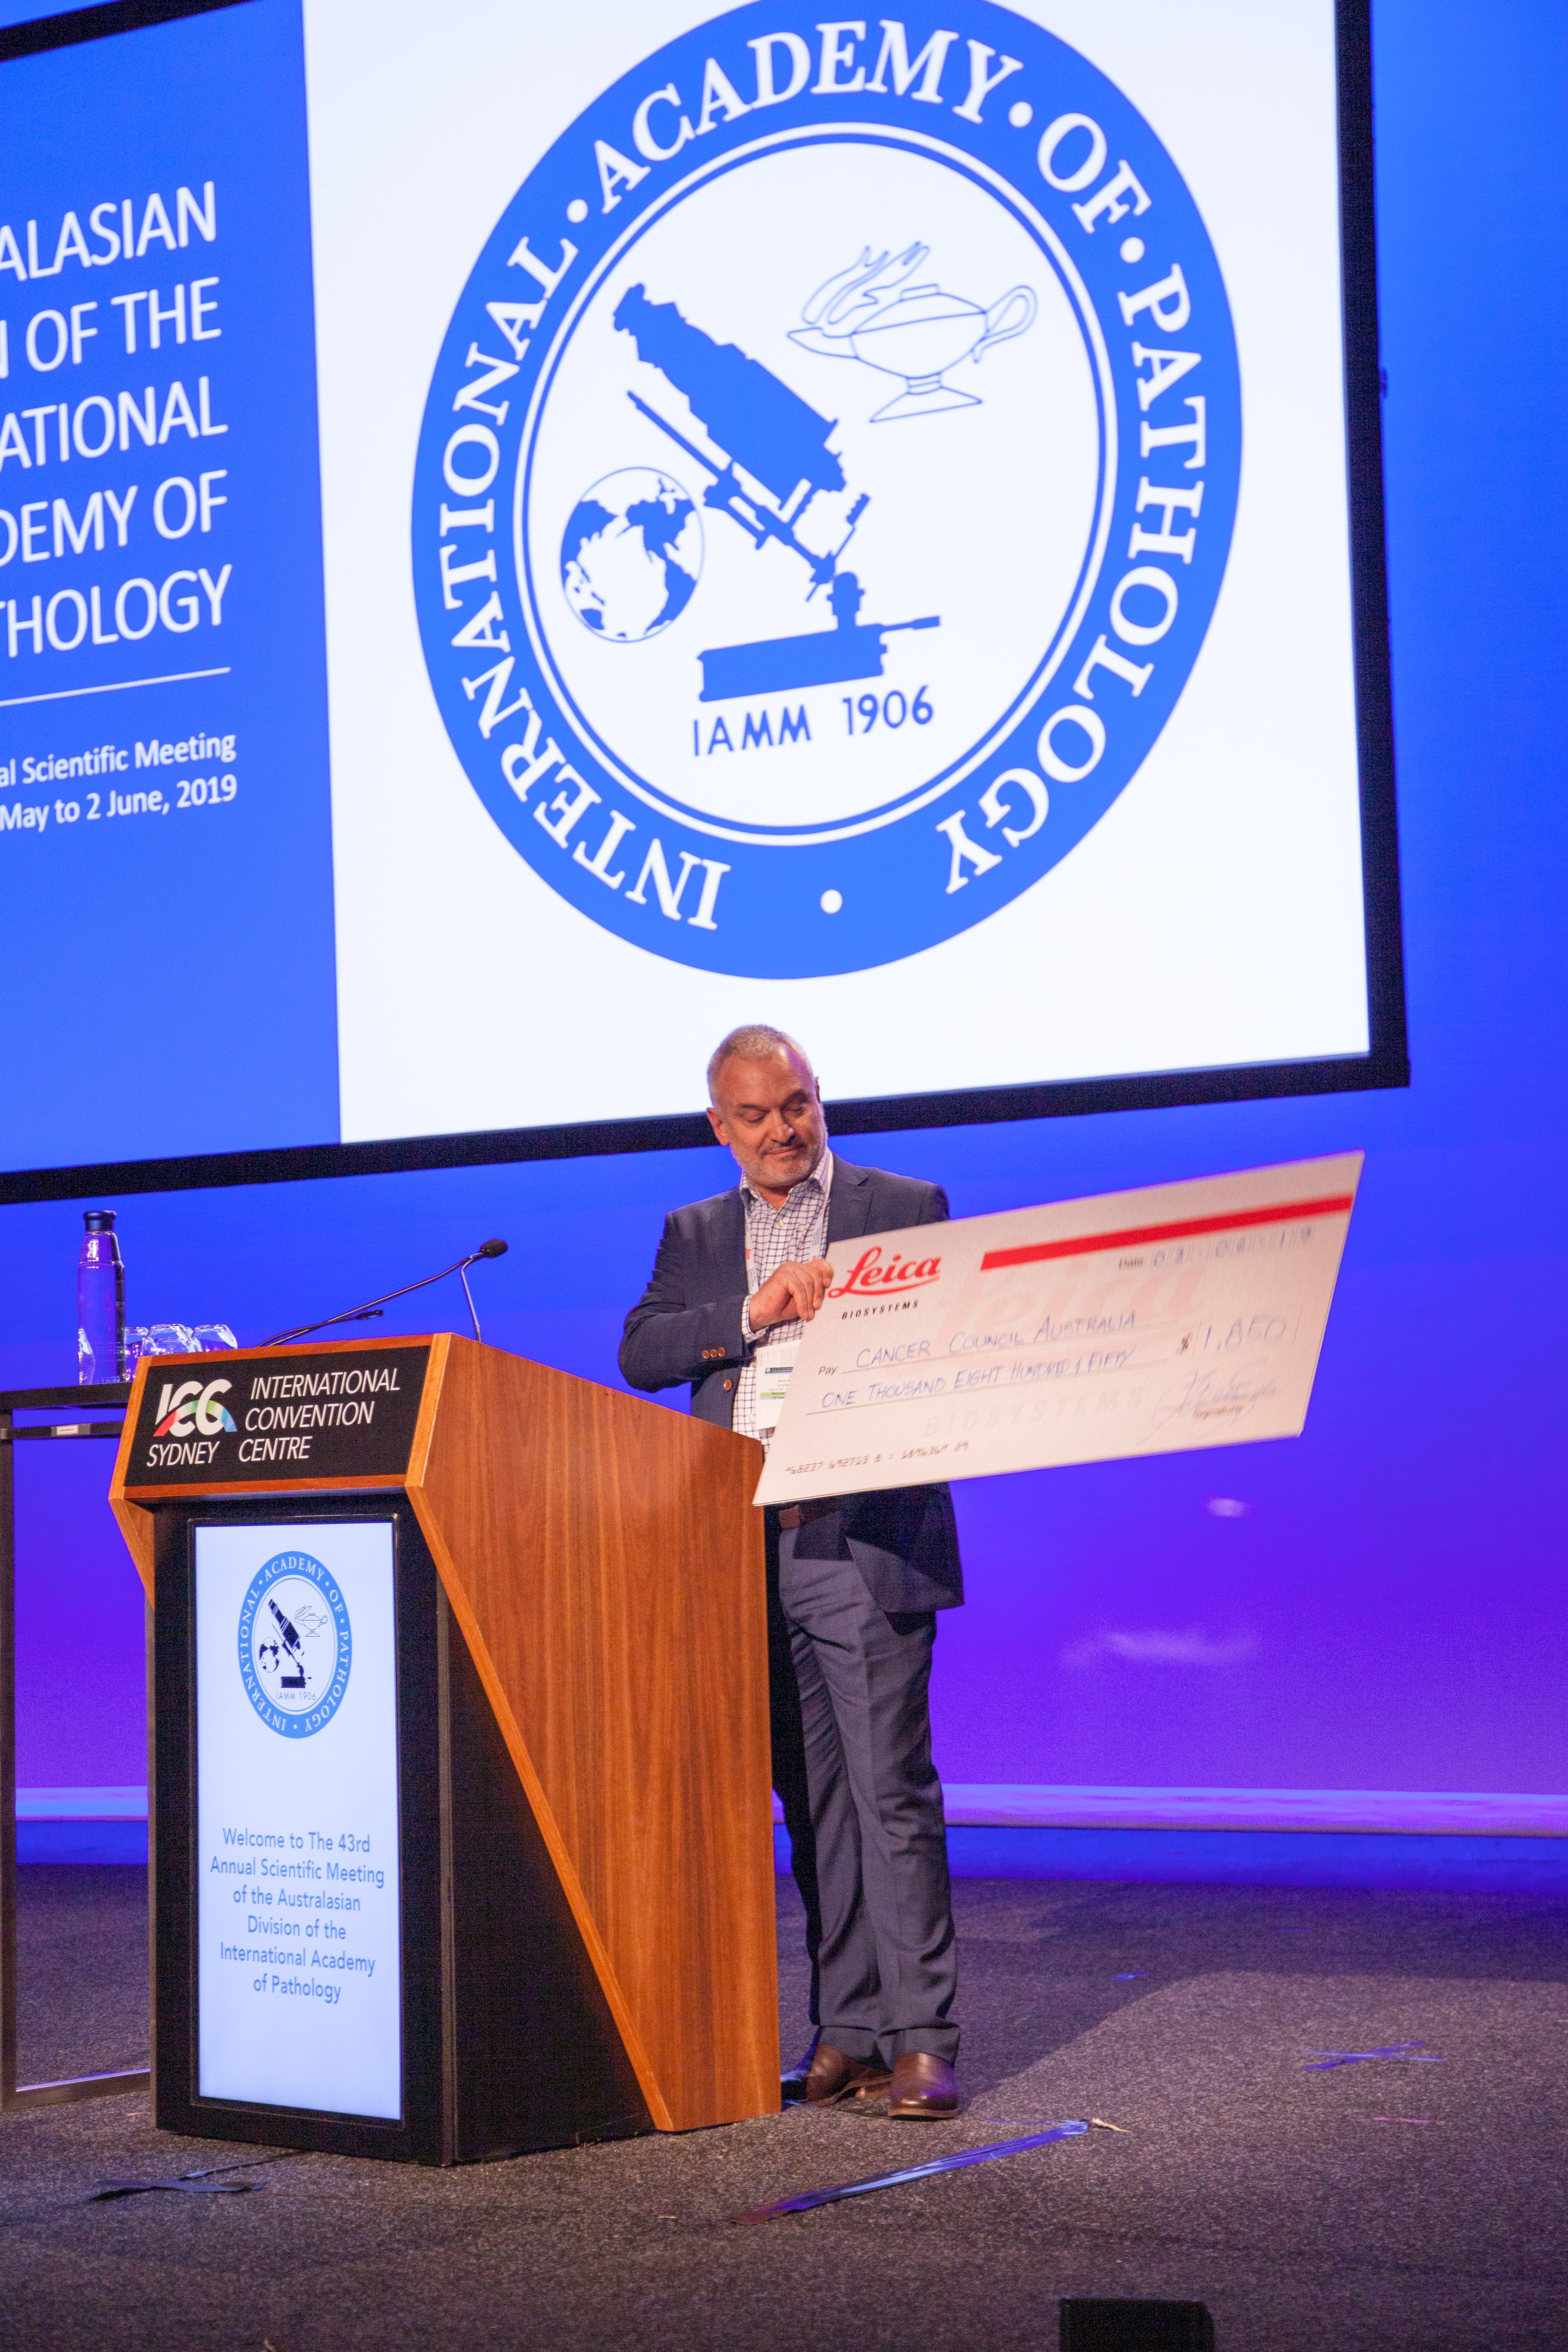 Kevin Balzarolo Leica Biosystems with a cheque for the Cancer Council Australia from funds raised at the conference